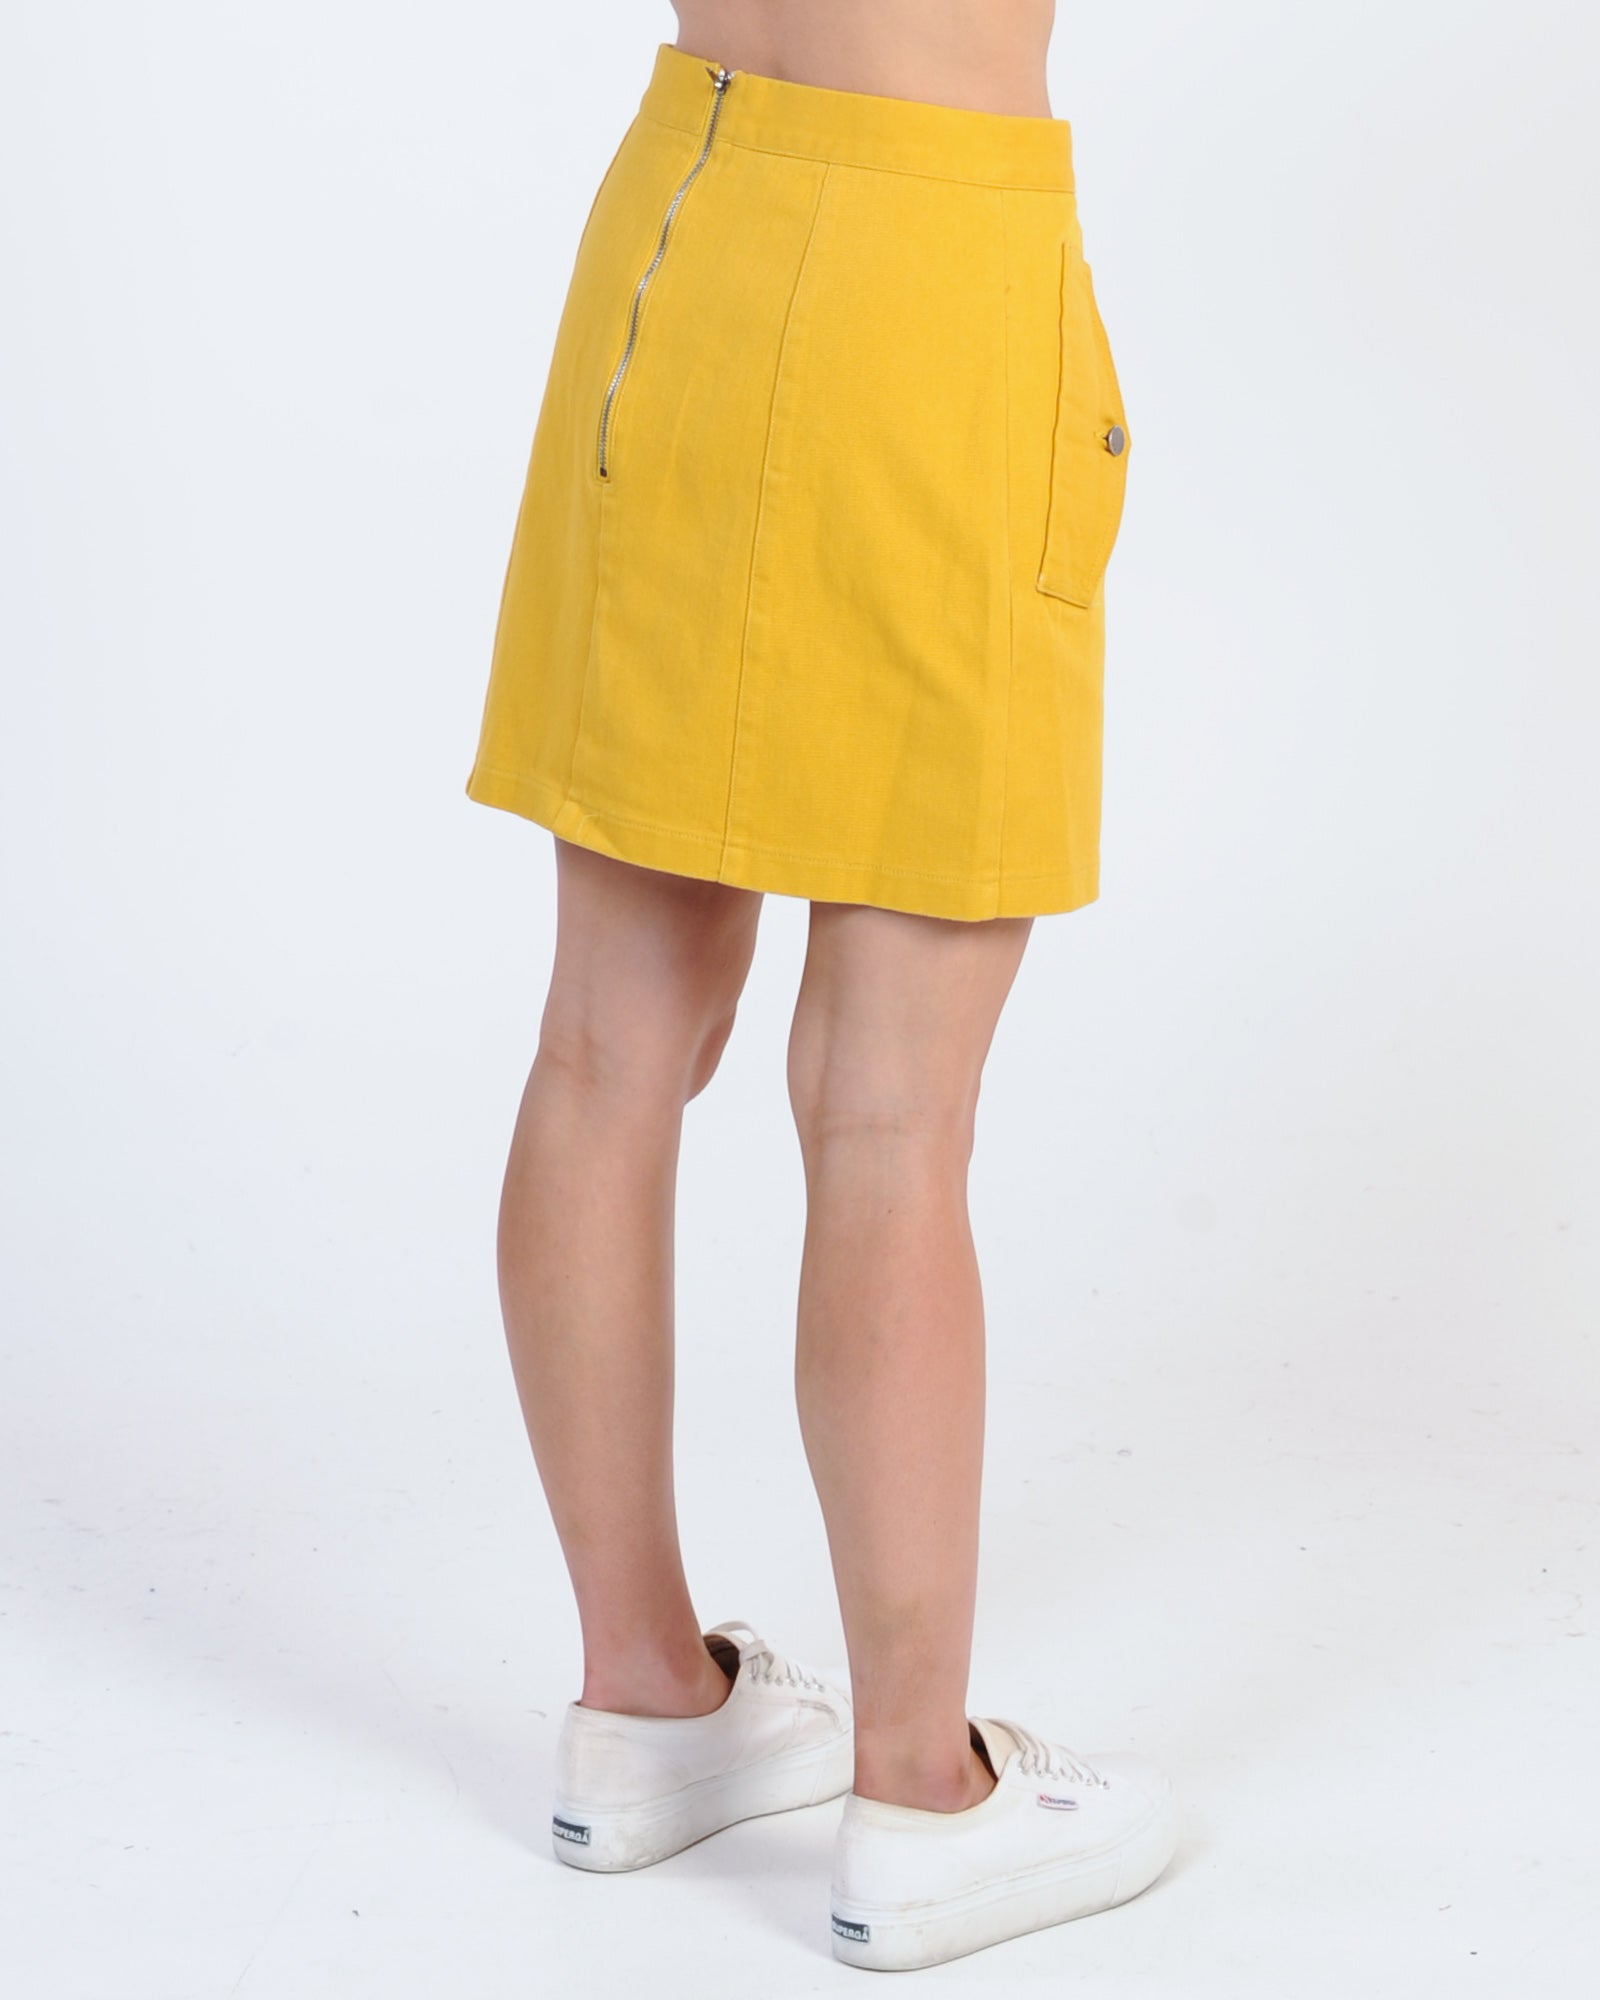 The Fifth Label Intentions Skirt - Mustard